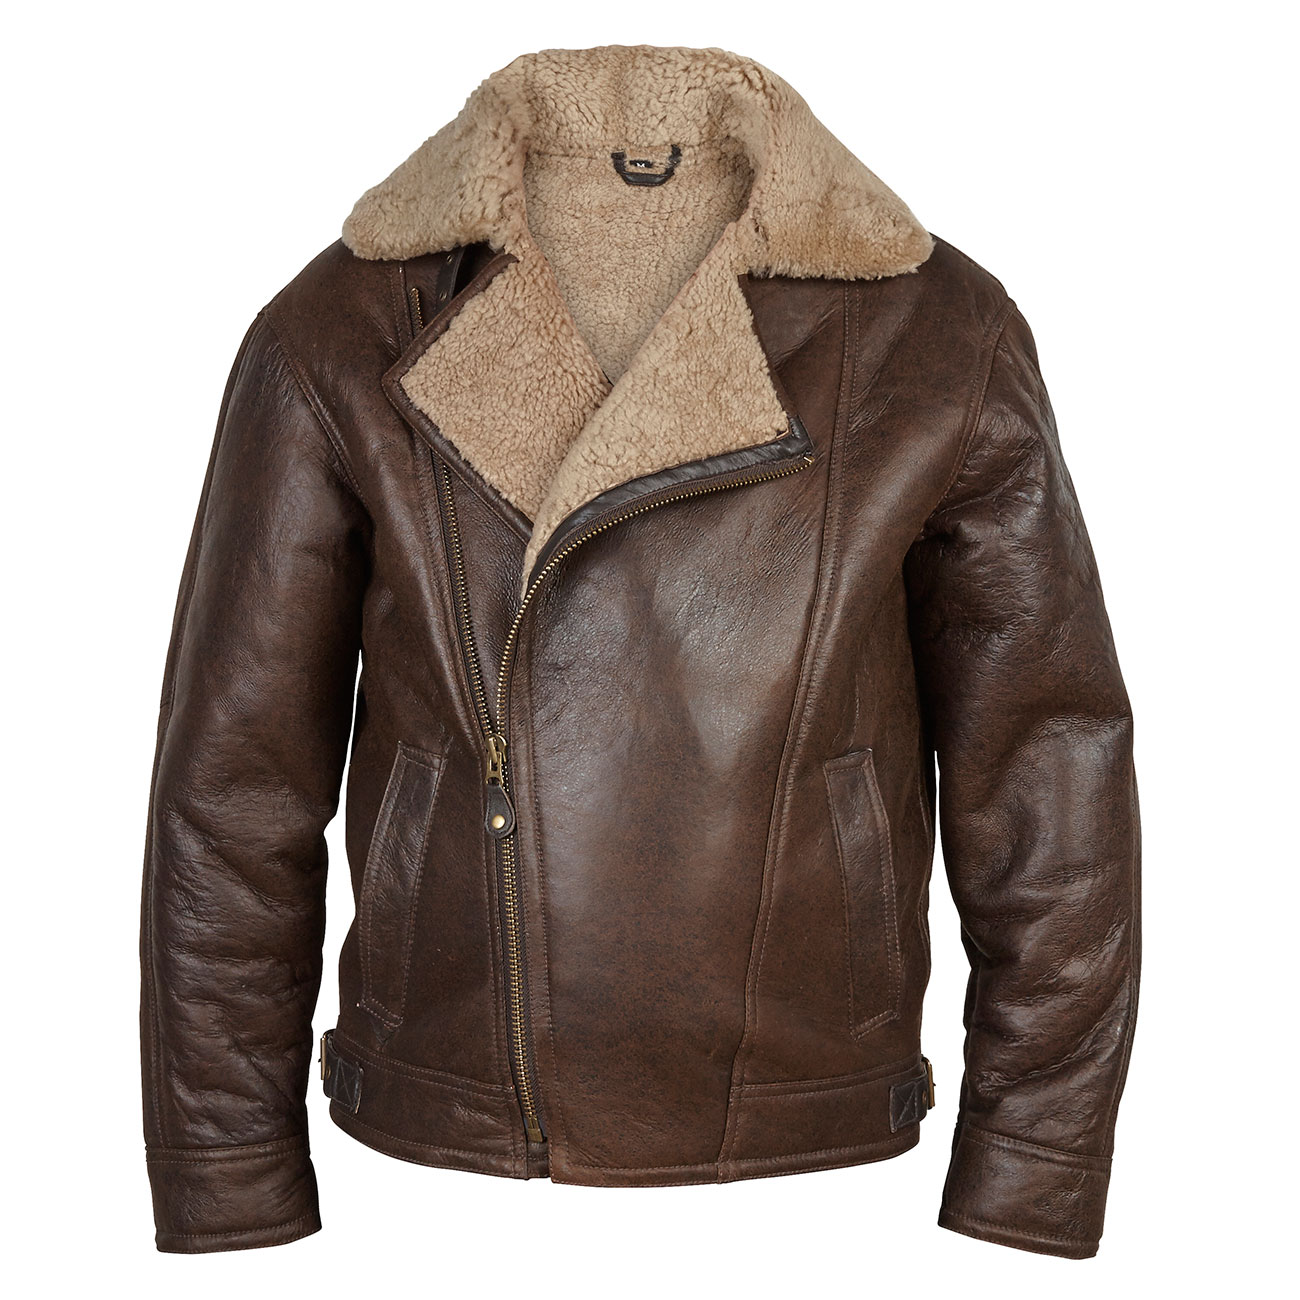 Gents Sheepskin Pilot jacket Antique